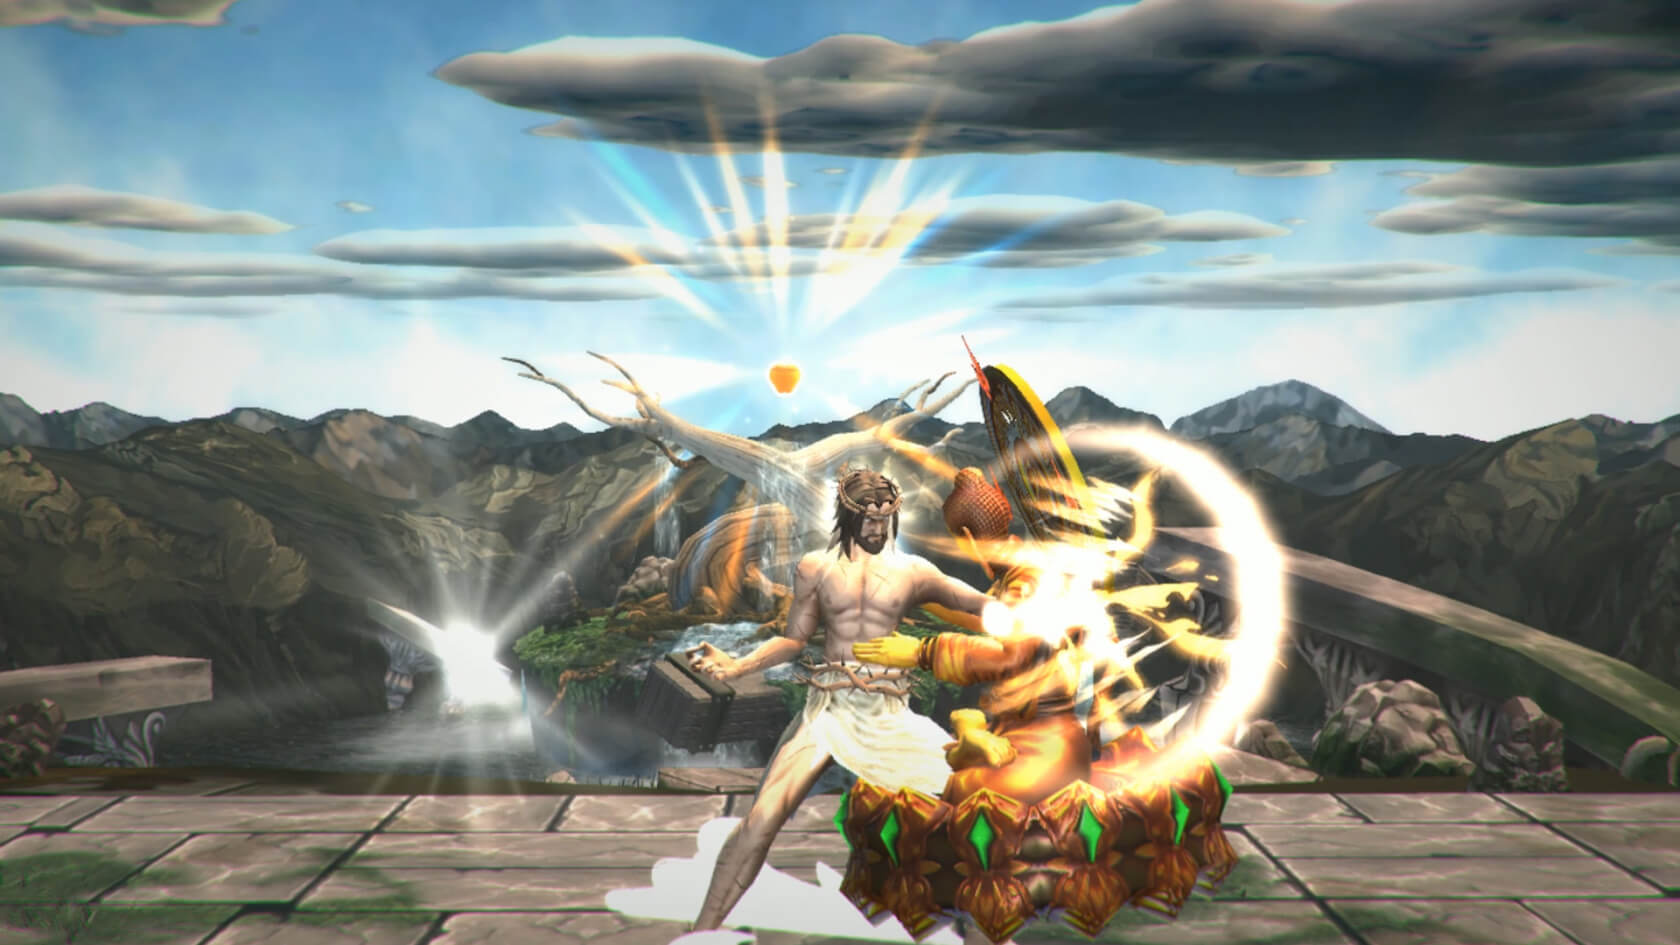 Malaysia is trying to ban 'Fight of Gods' because of 'blasphemous' content